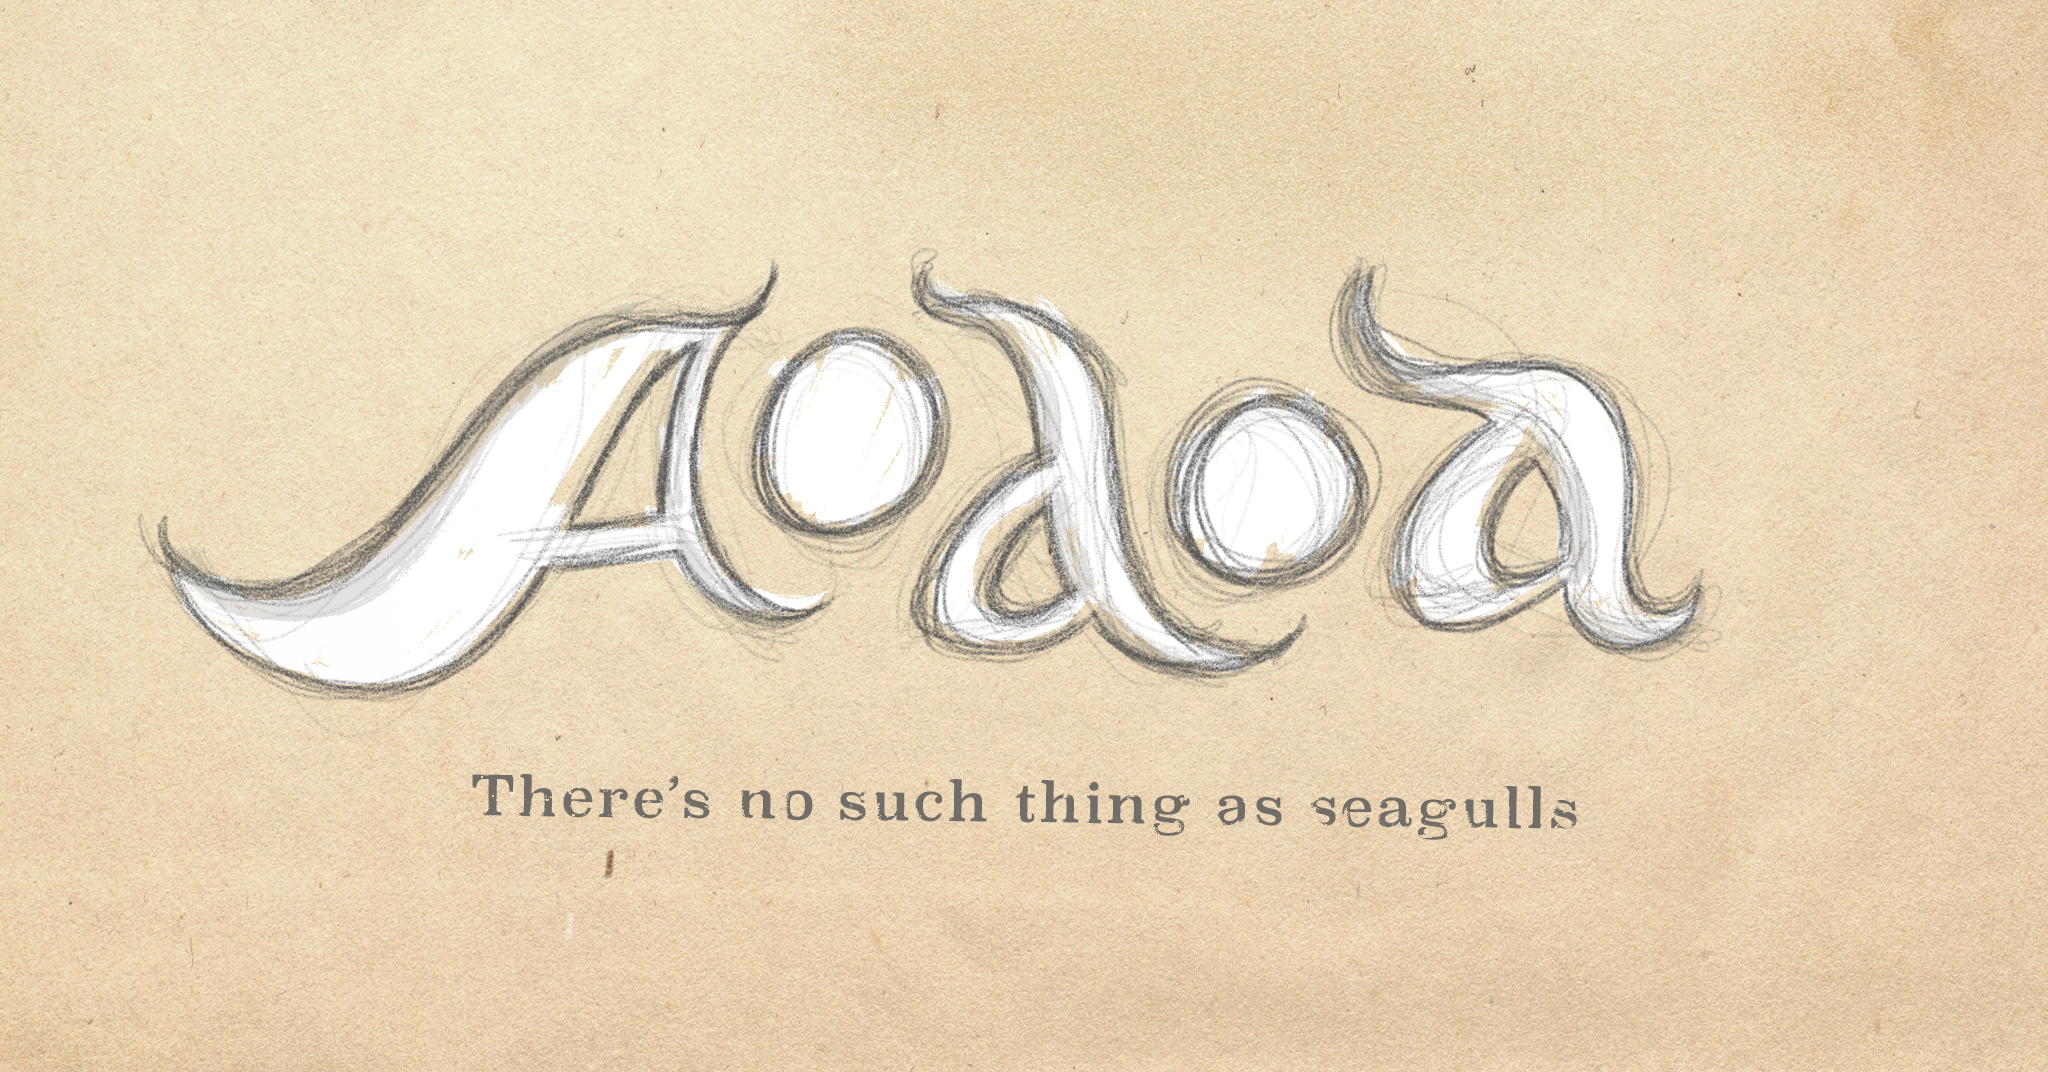 AOAOA - A sample of a comic about doing life wrong.